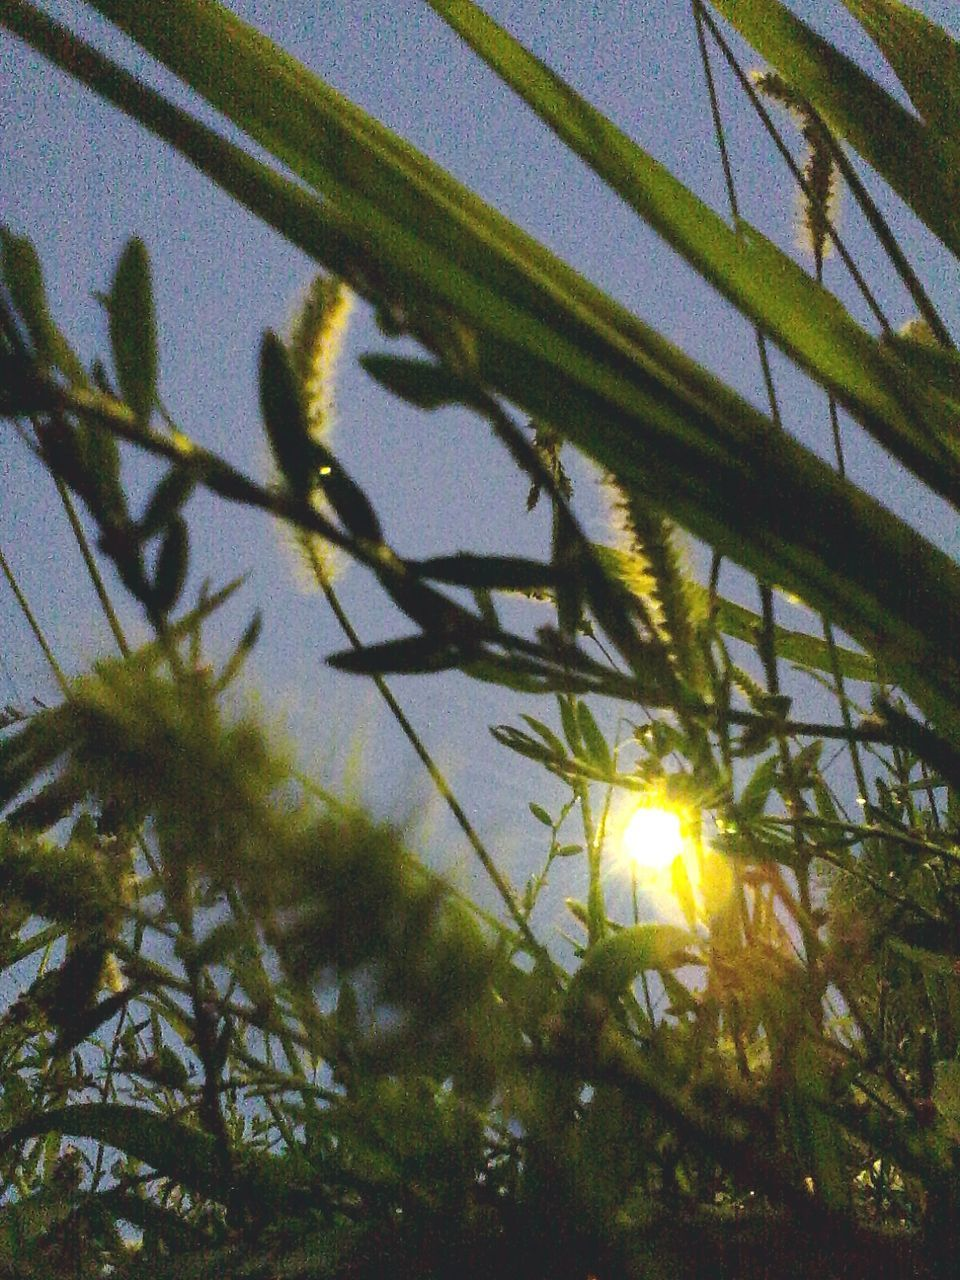 growth, sunlight, sun, lens flare, nature, no people, plant, outdoors, day, tree, leaf, beauty in nature, close-up, freshness, flower, sky